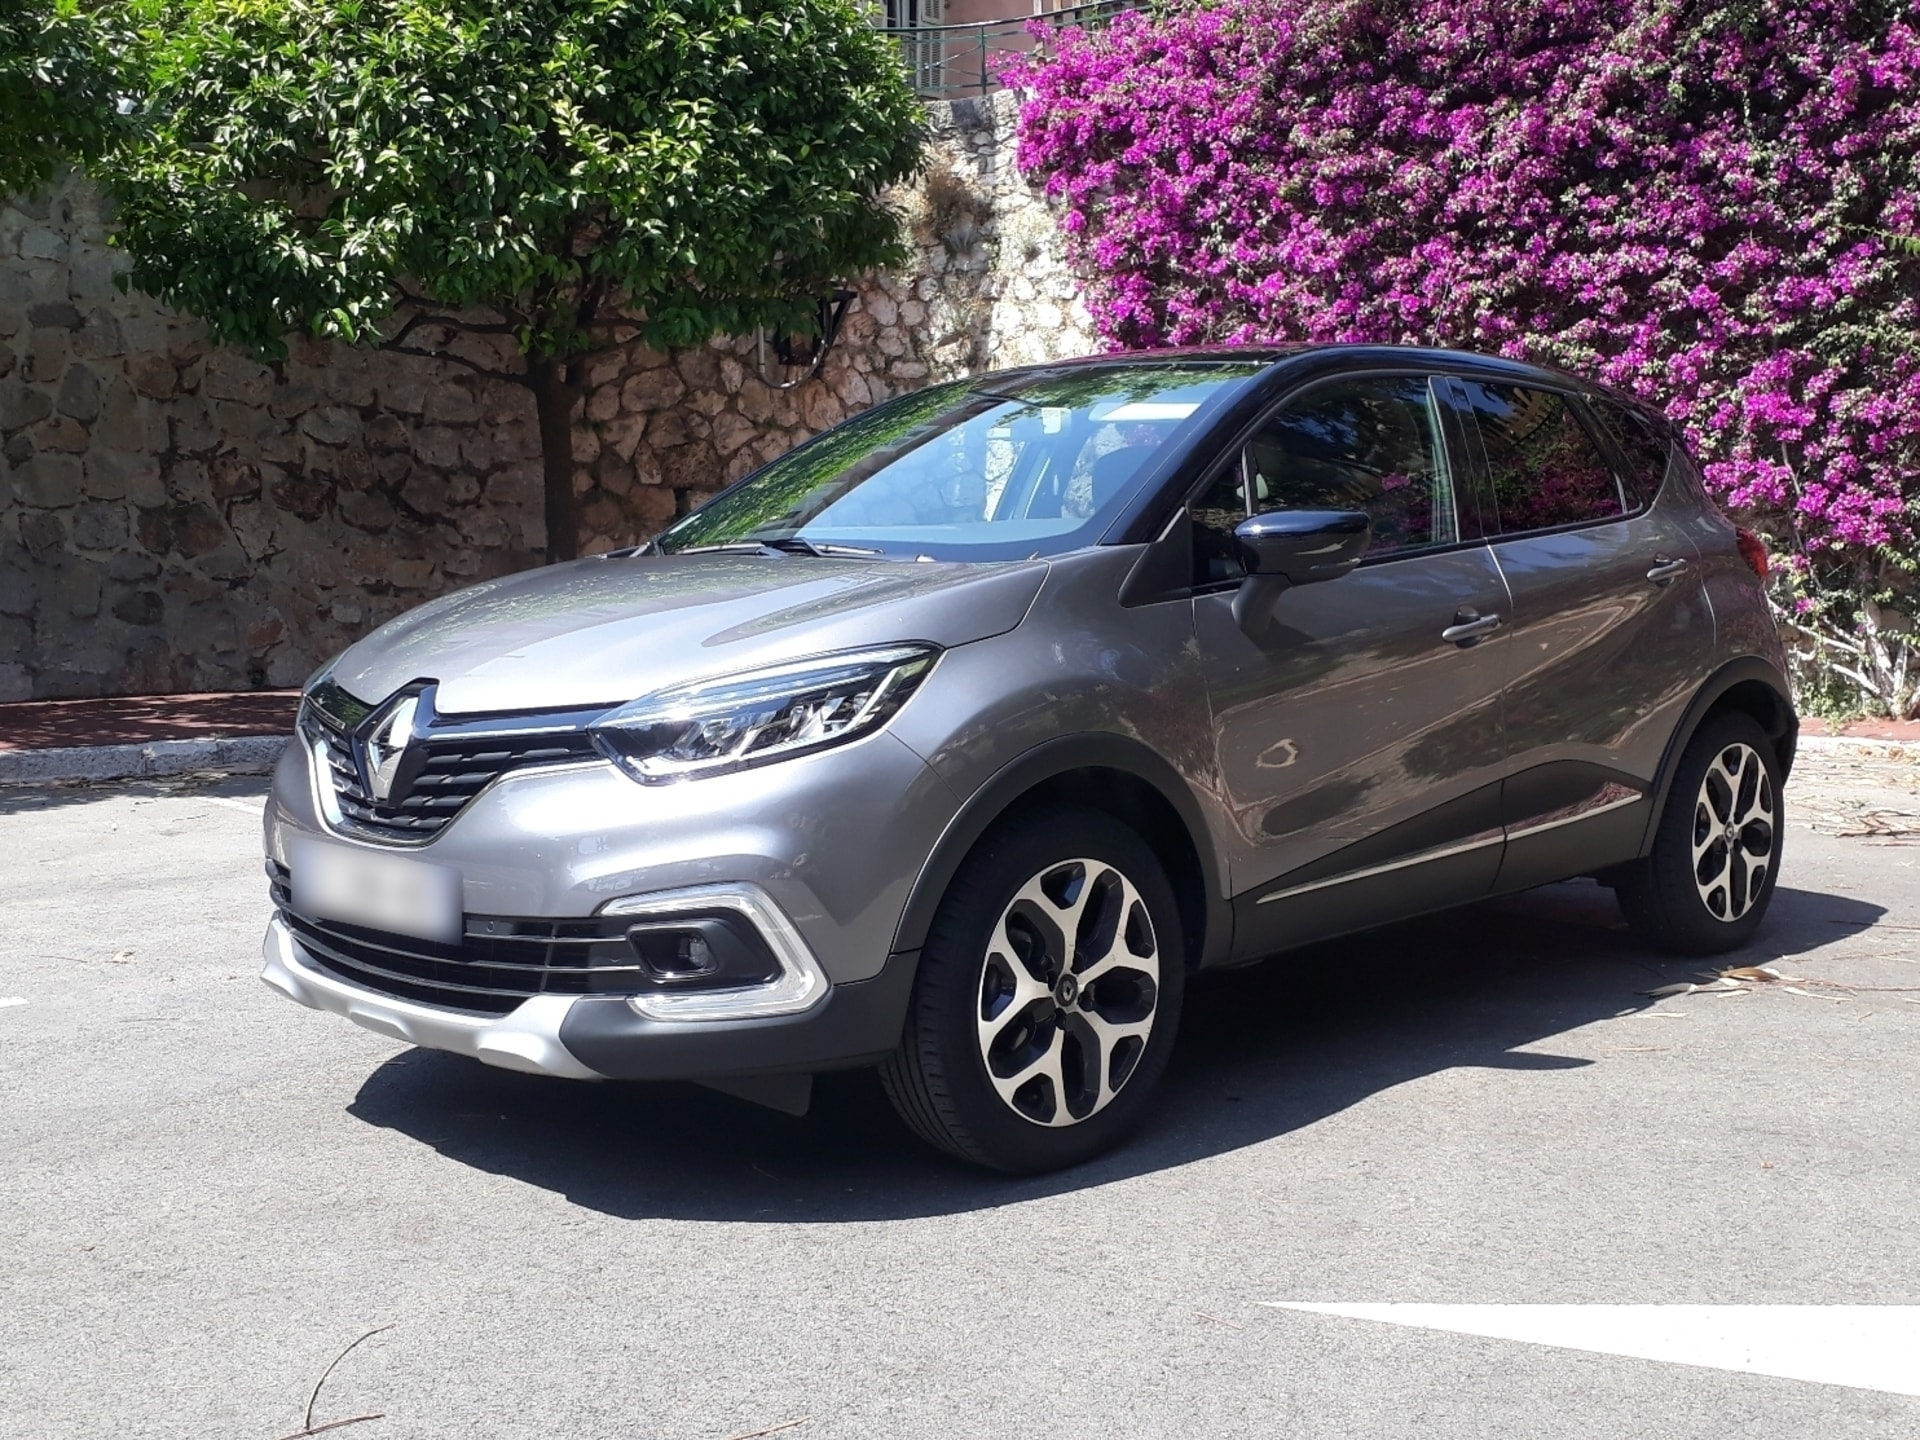 RENAULT CAPTUR 0.9 TCE 90 ENERGY INTENS - Carventura